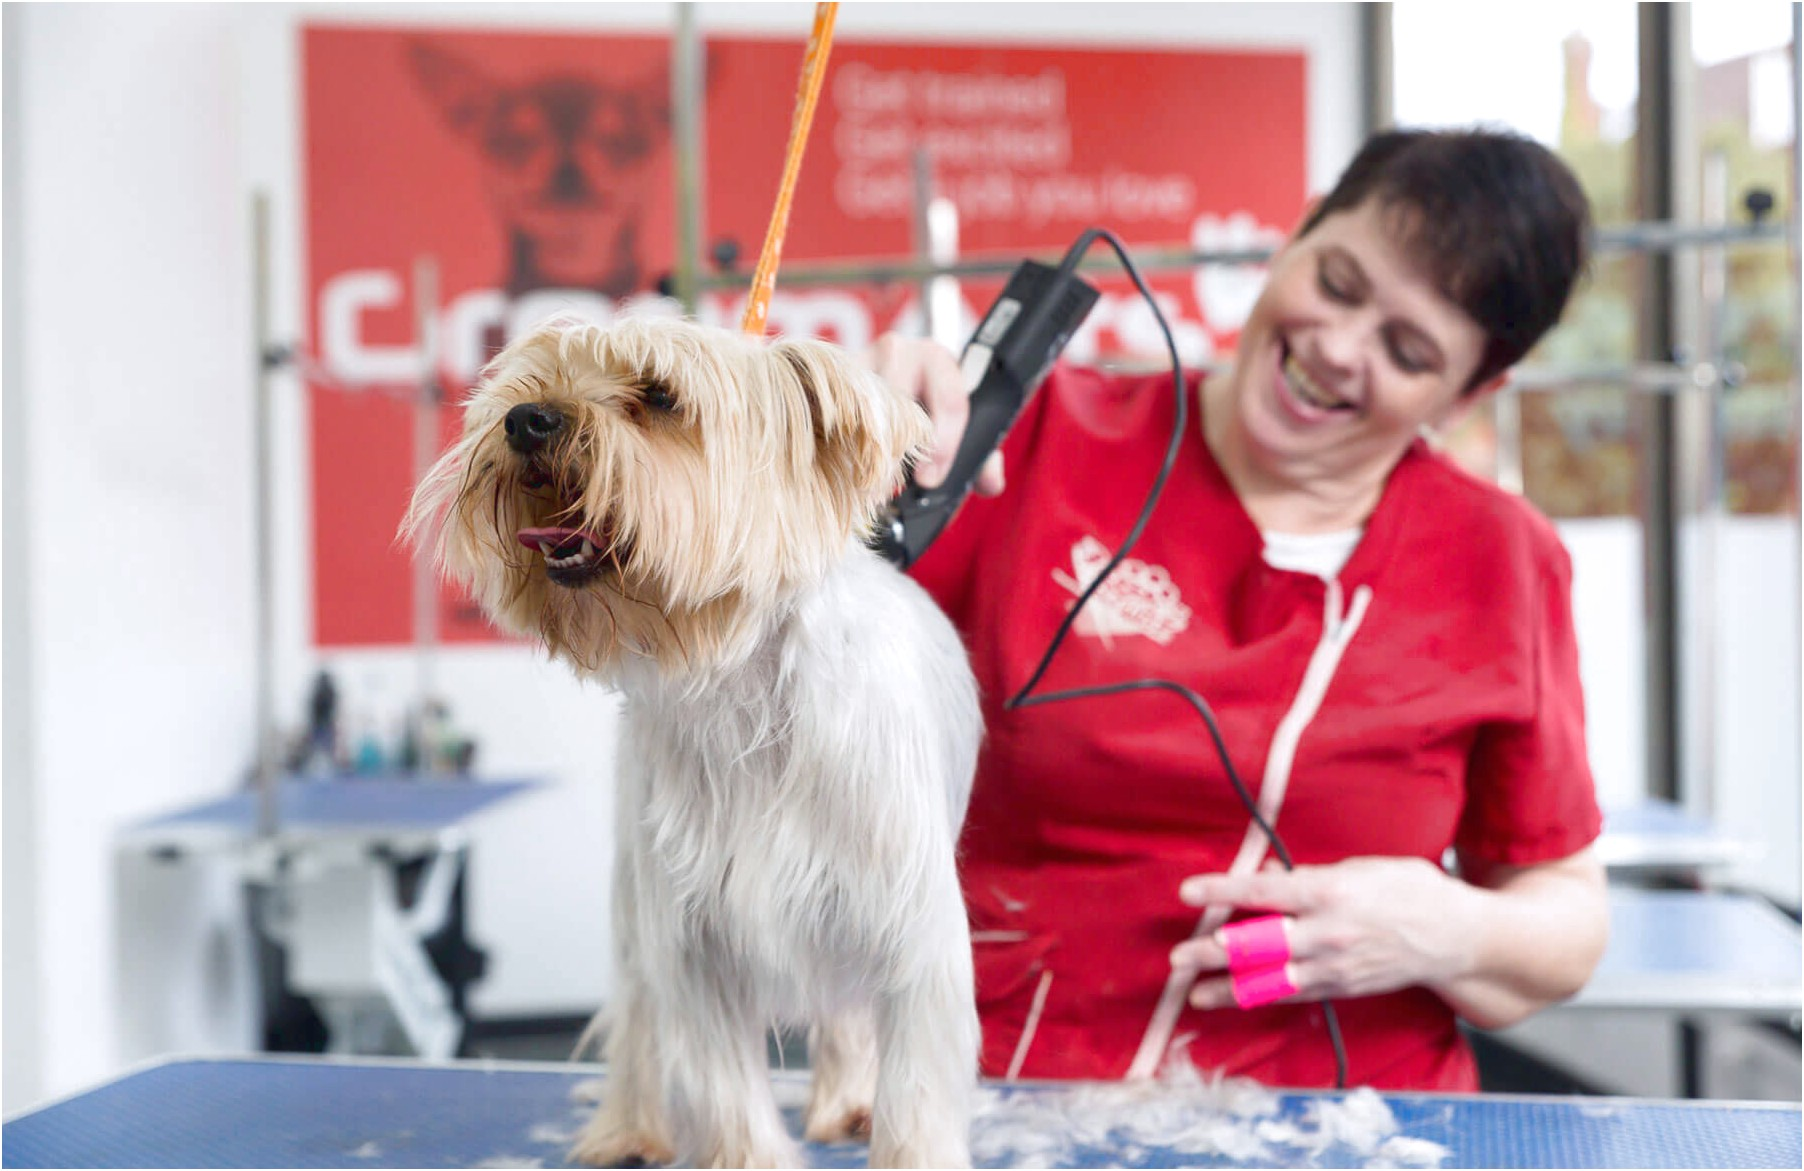 evening dog grooming courses near me